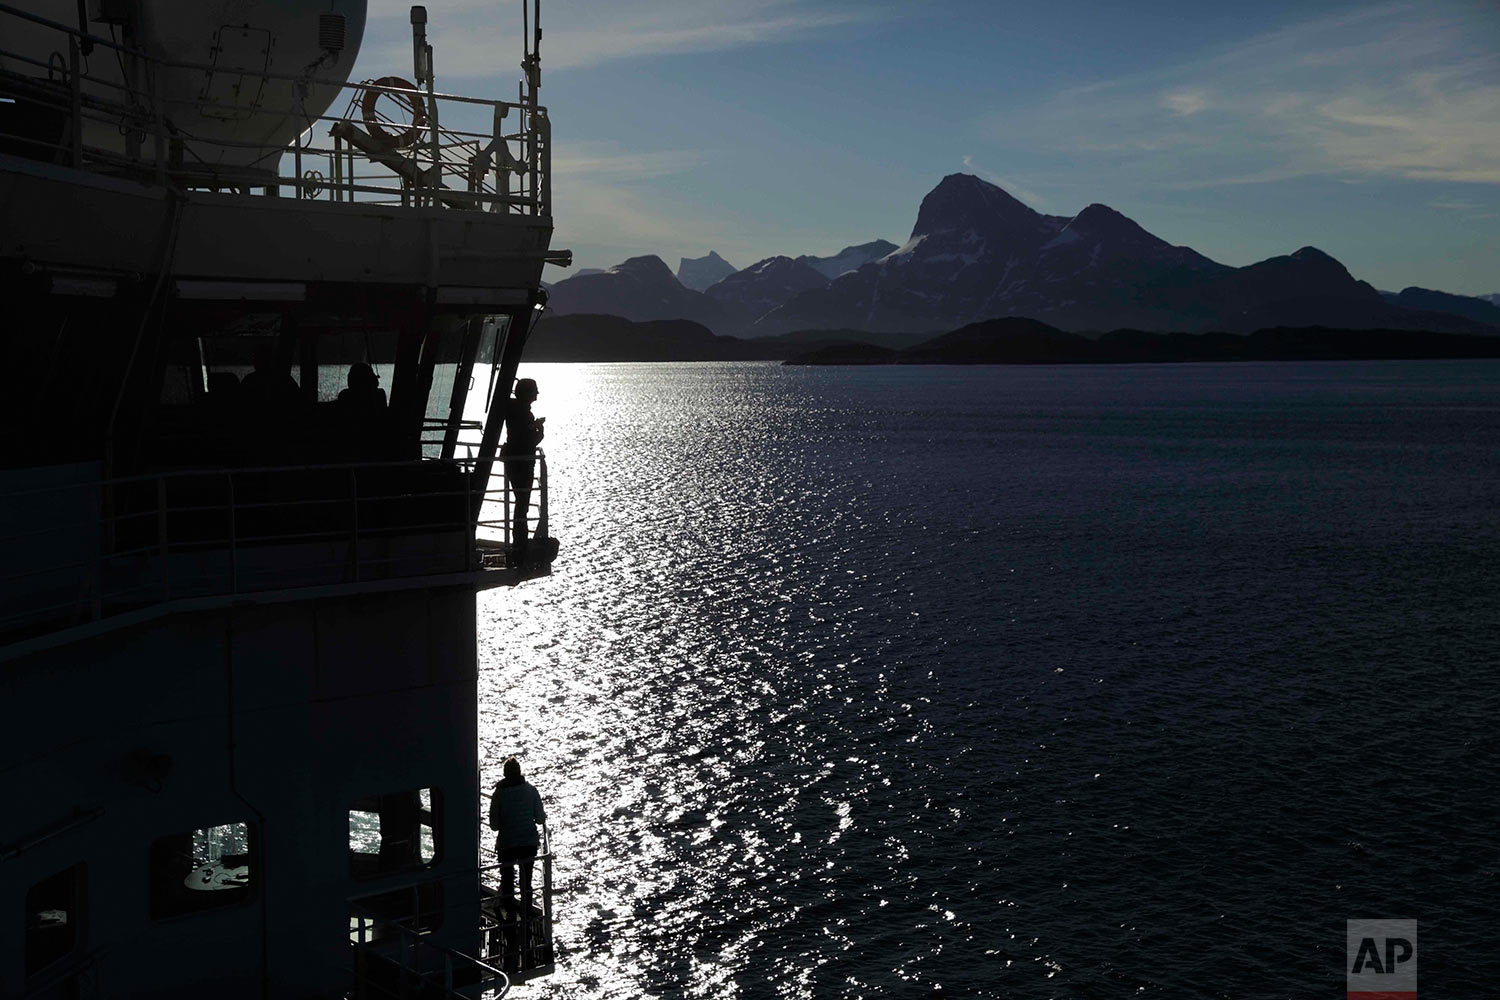 Personnel stand aboard the Finnish icebreaker MSV Nordica as it arrives into Nuuk, Greenland, after traversing the Northwest Passage through the Canadian Arctic Archipelago, Saturday, July 29, 2017. After 24 days at sea and a journey spanning more than 10,000 kilometers (6,214 miles), the MSV Nordica has set a new record for the earliest transit of the fabled Northwest Passage. The once-forbidding route through the Arctic, linking the Pacific and the Atlantic oceans, has been opening up sooner and for a longer period each summer due to climate change. (AP Photo/David Goldman)